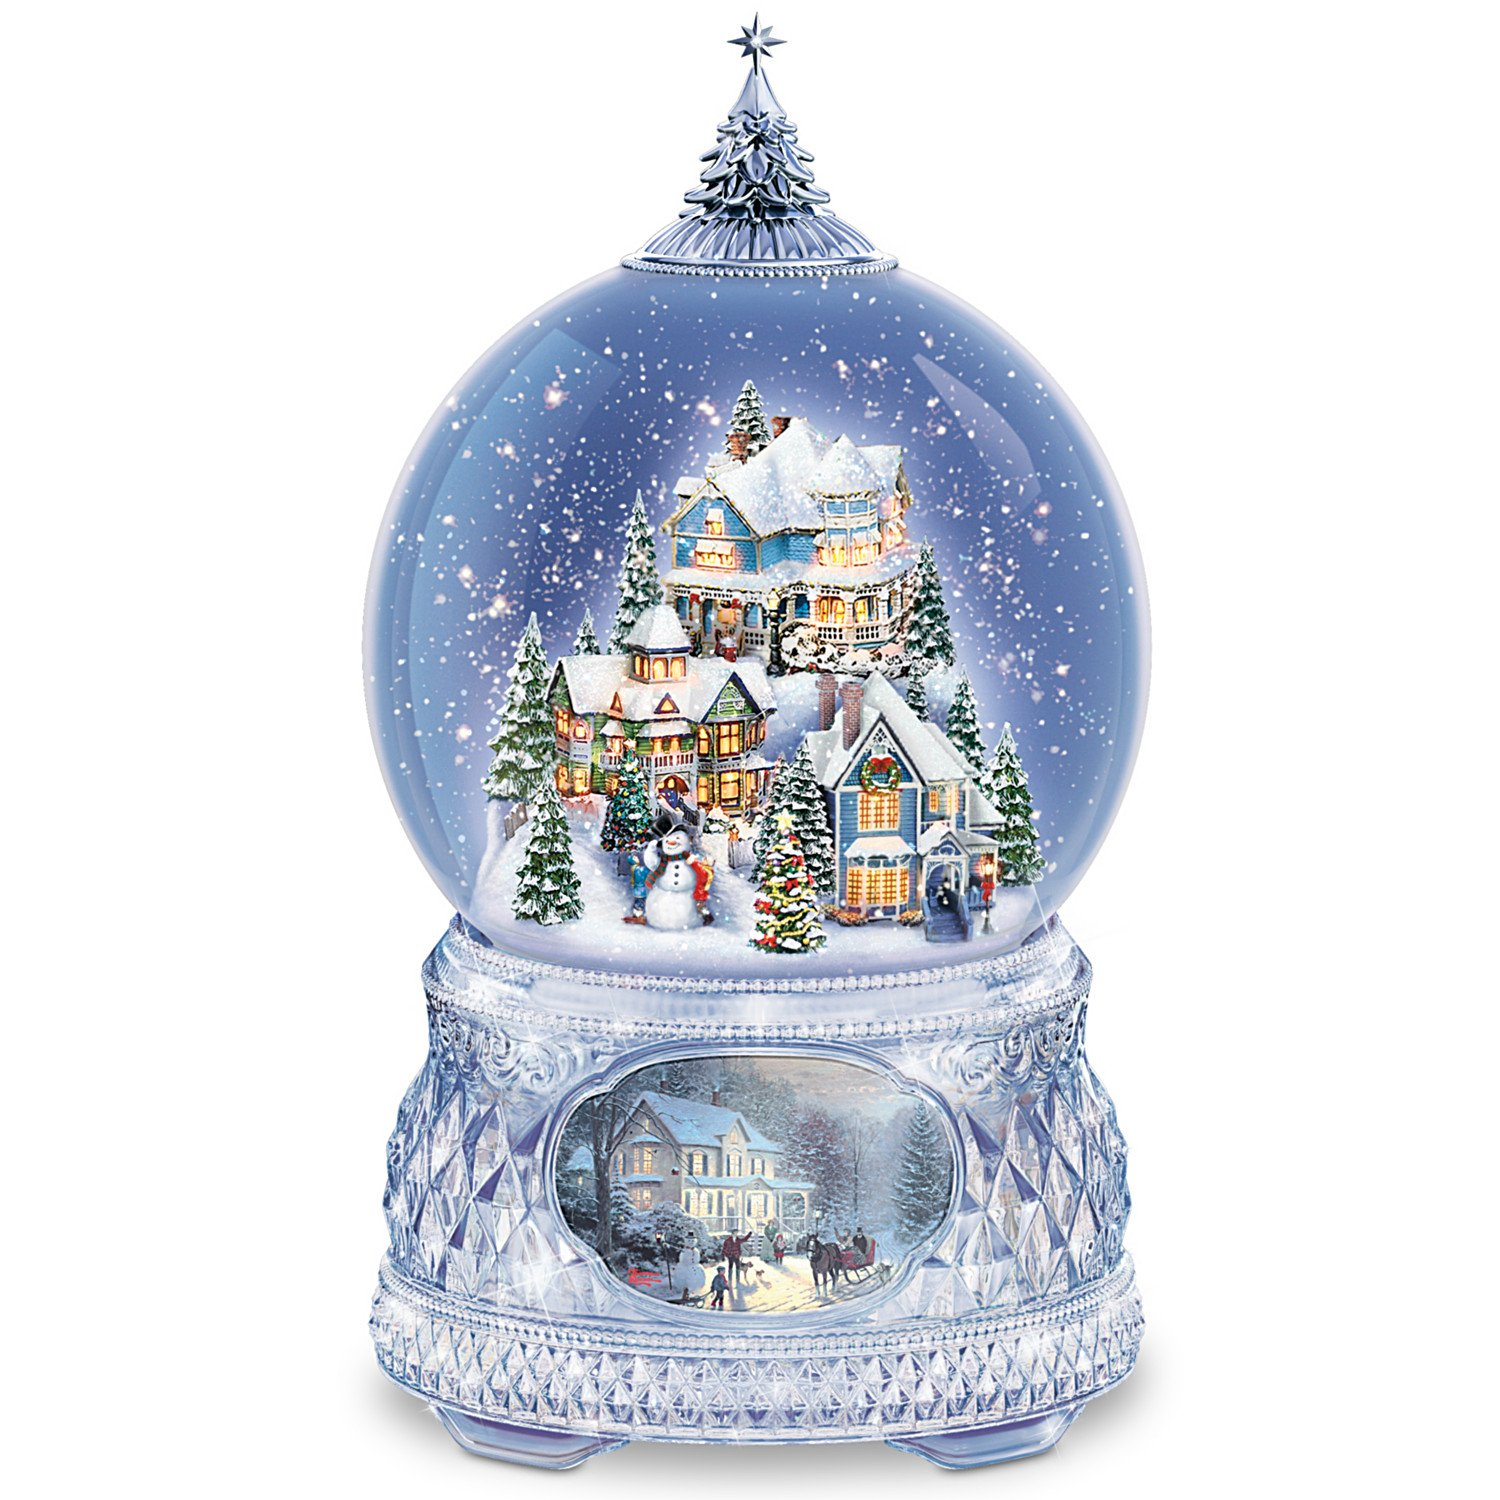 Thomas Kinkade Snowglobe With Crystal Base, Lights, Music: Home For The Holidays by The Bradford Exchange by Bradford Exchange